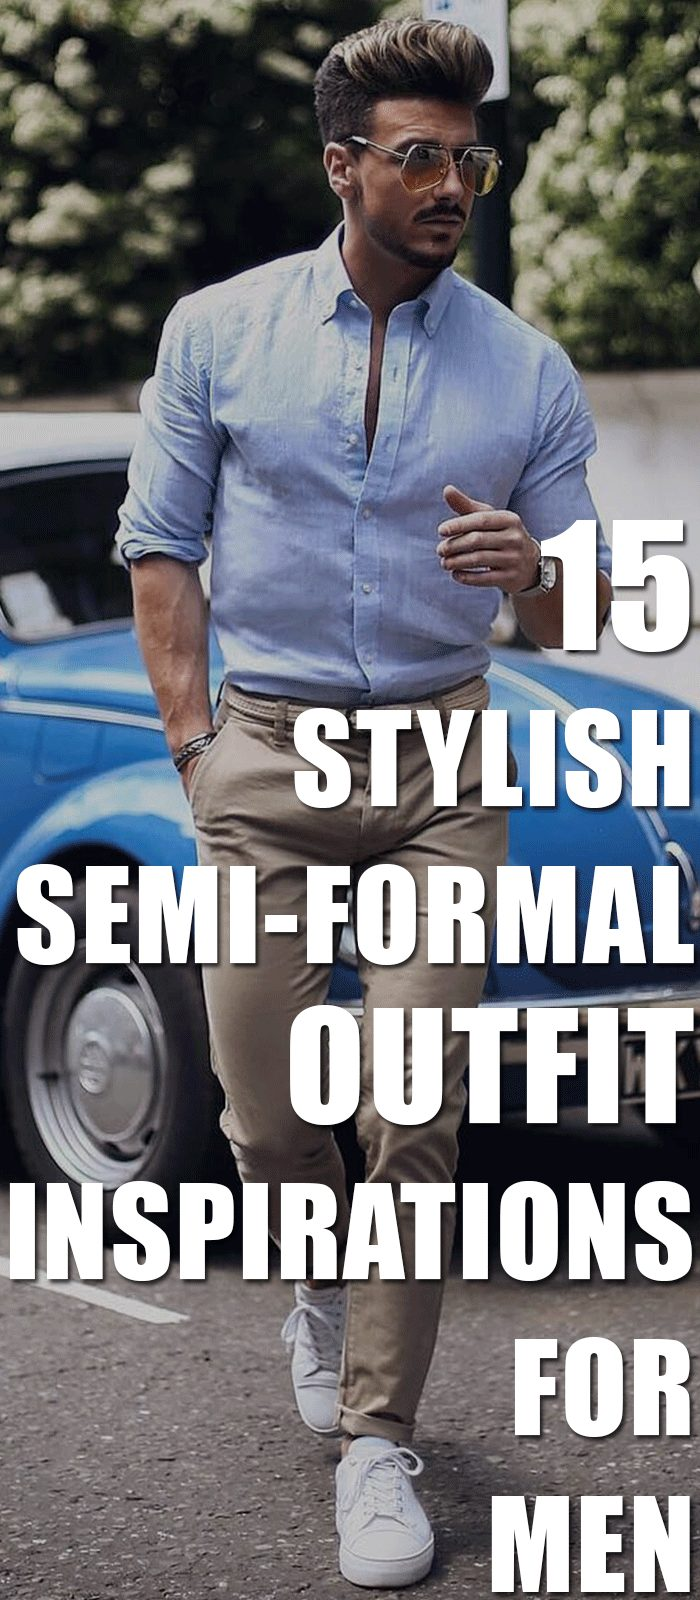 15 Stylish Semi-Formal Outfit Inspirations For Men.